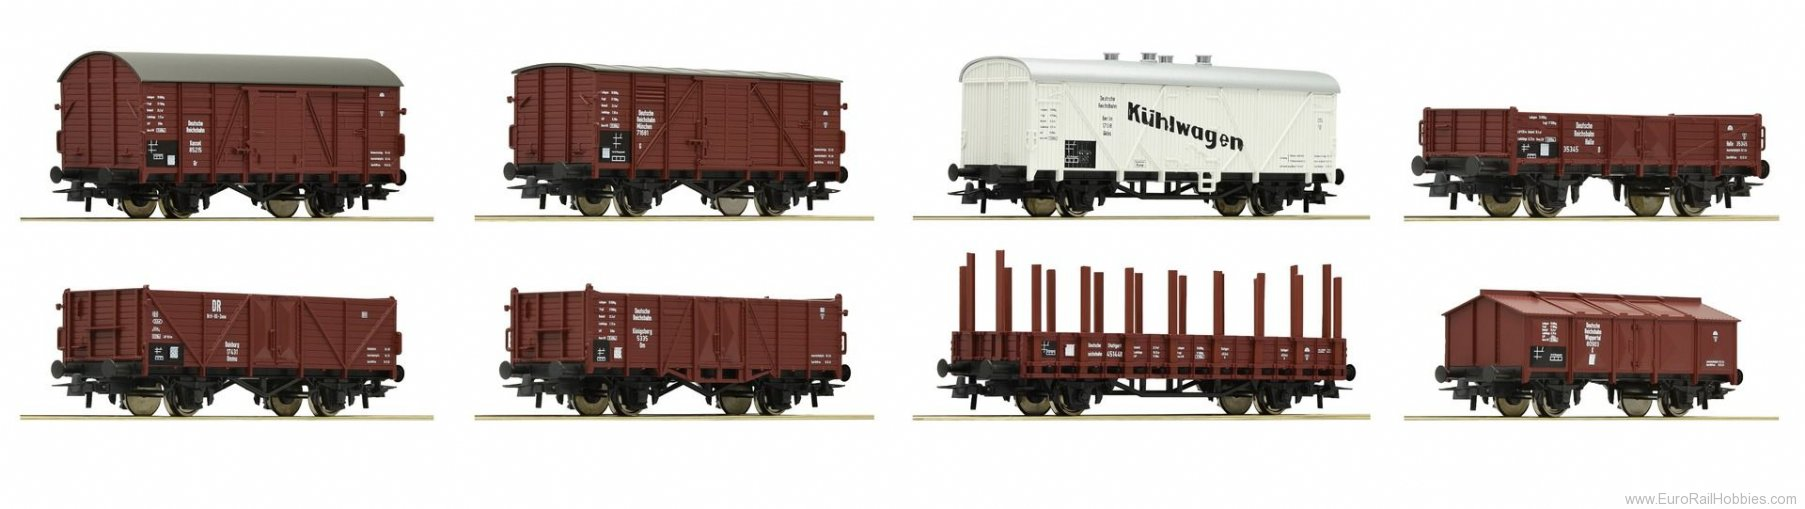 Roco 44003 8-piece set of freight cars, DRG